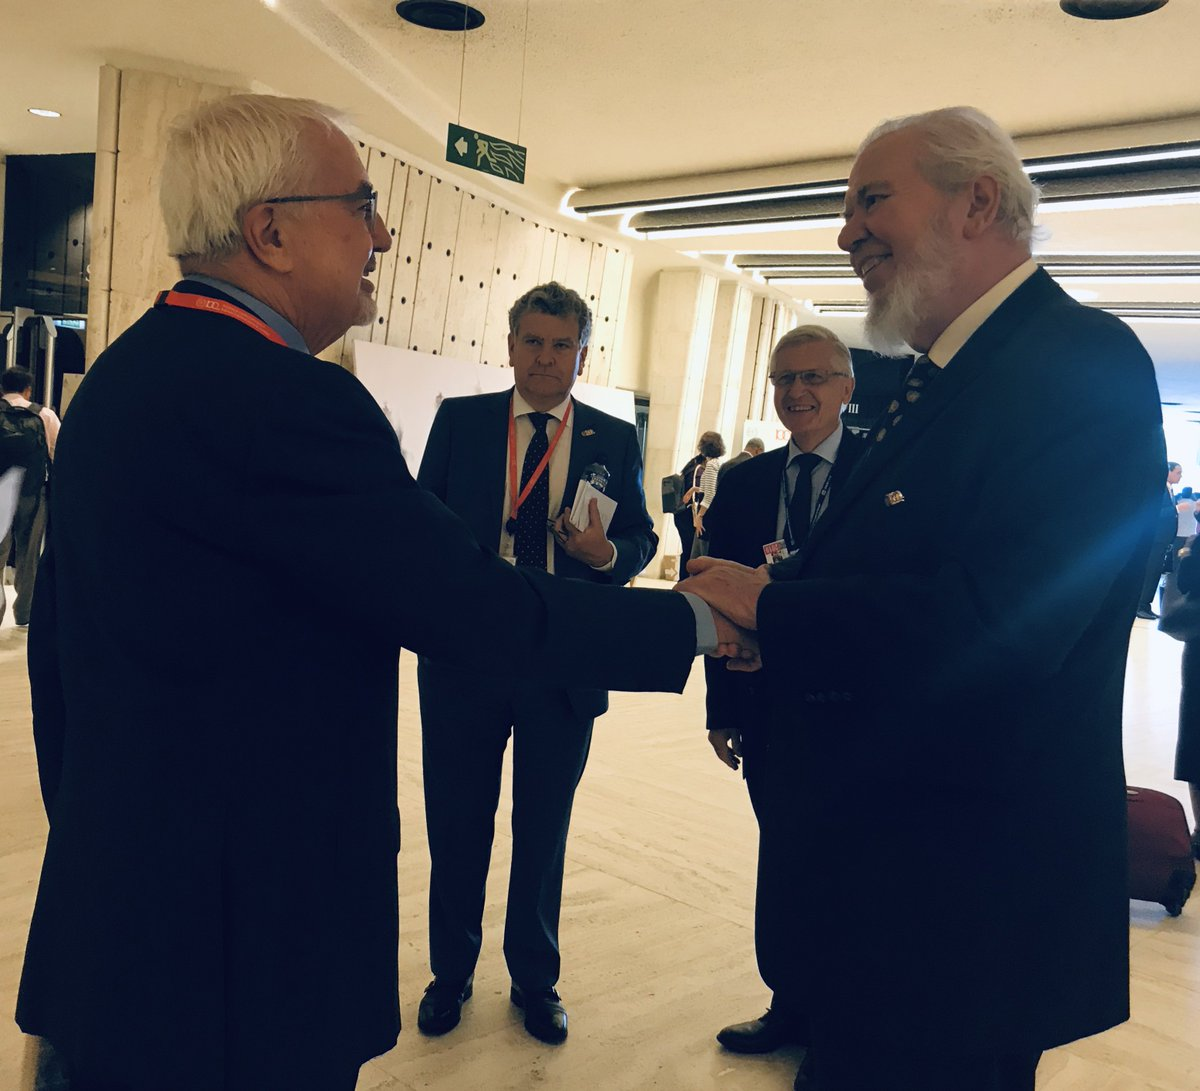 Two former @ilo DGs meet again, Juan Somavia and Michel Hansenne catch up before a fascinating discussion with @GuyRyder at #ILC2019 #ILO100